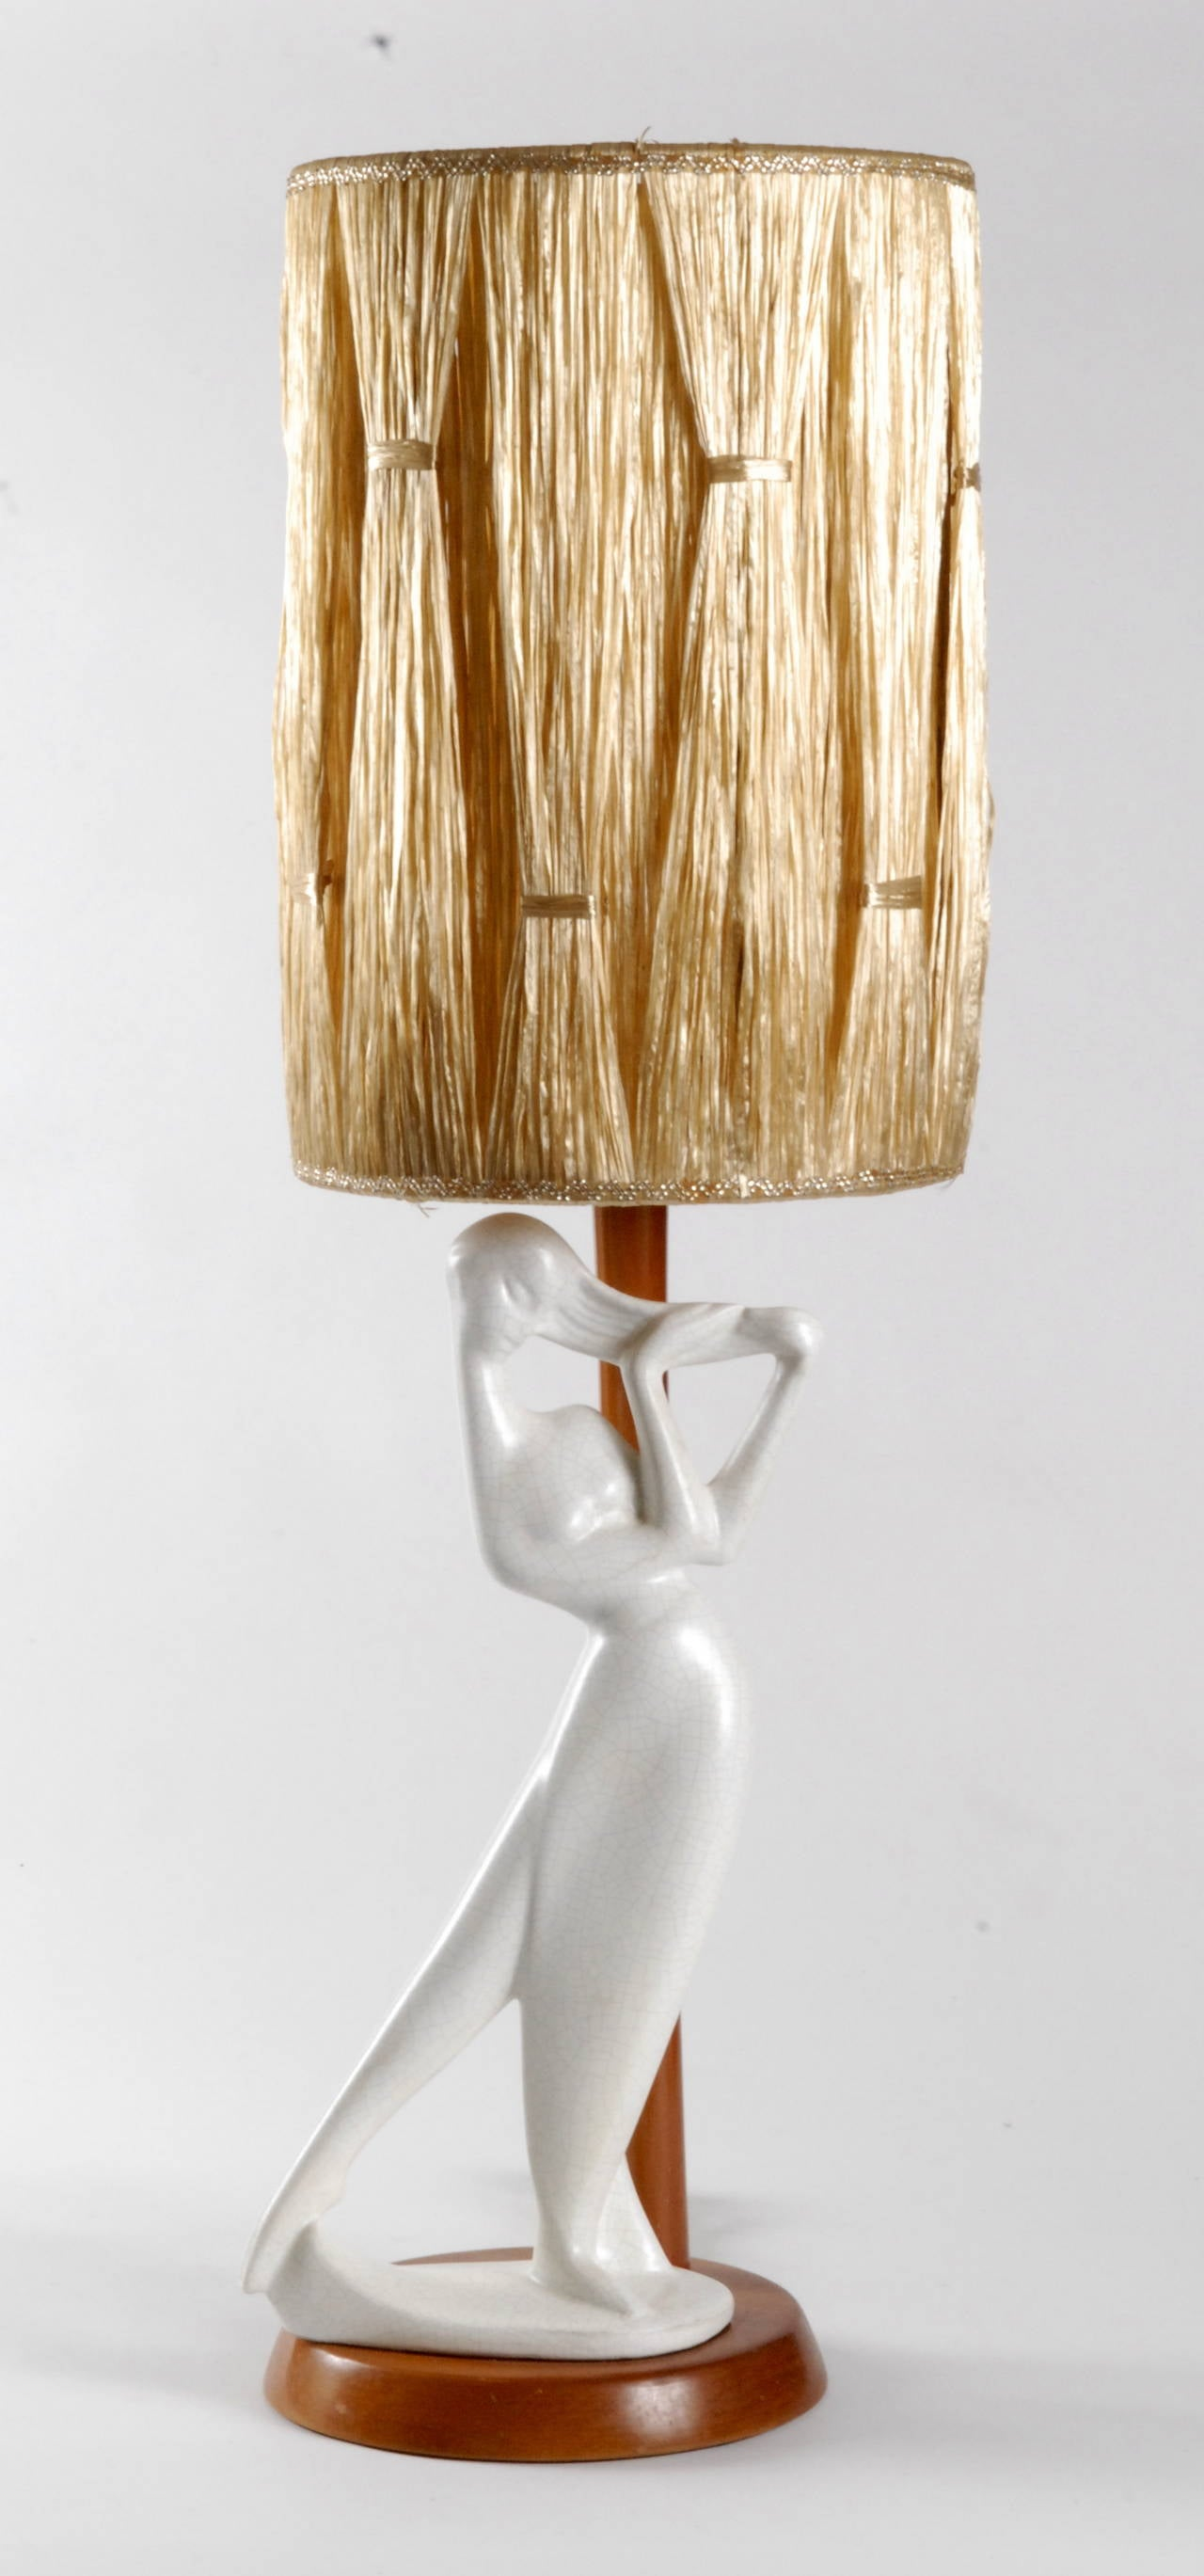 Barsony ceramics is an Australian company founded in the 1950s by Husband and Wife team George and Jean Barsony in a factory in Guildford near Sydney. This very large white lady lamp is very rare, especially with its original raffia shade. The